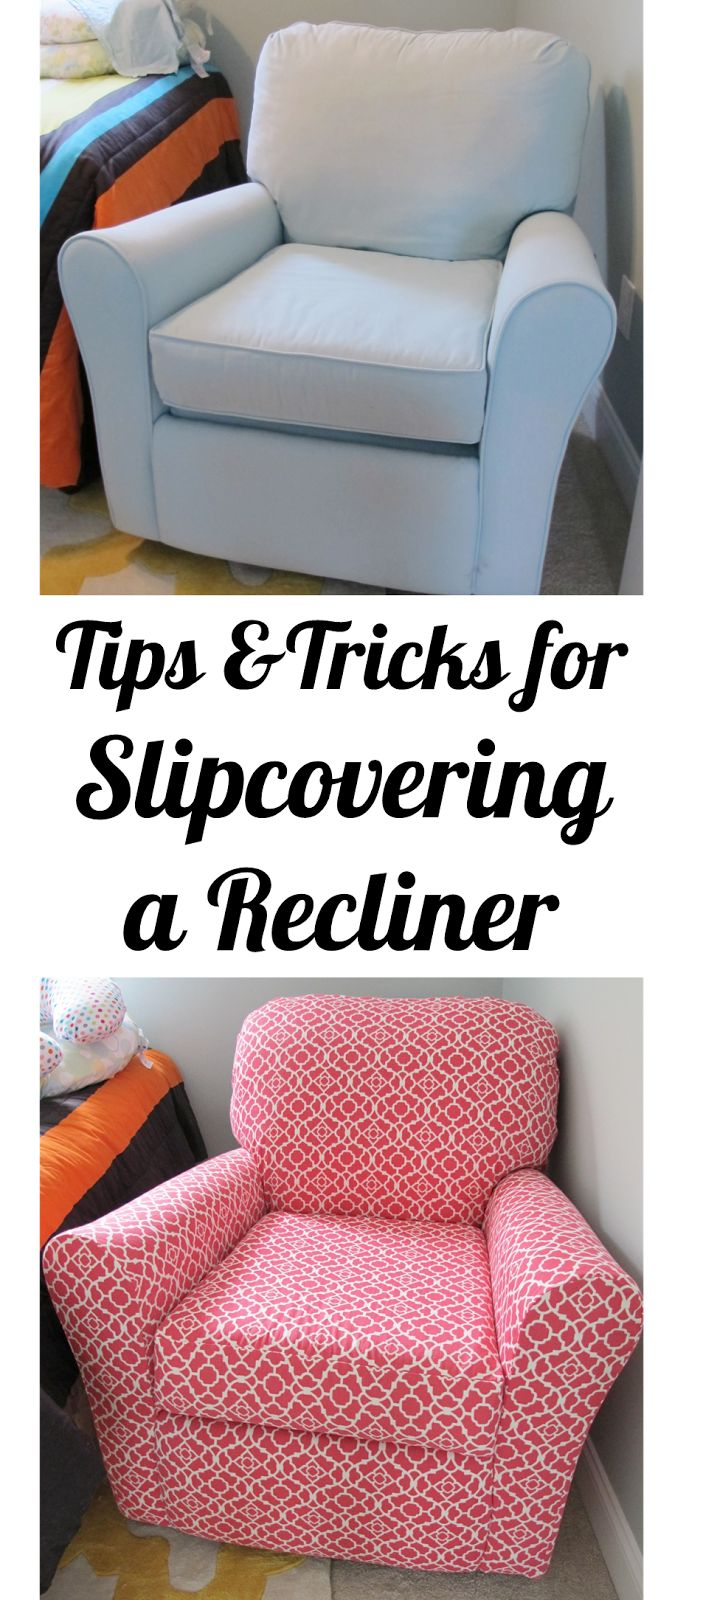 Awesome post full of tips and tricks!!!   BonnieProjects: Tips & Tricks for Slipcovering a Recliner